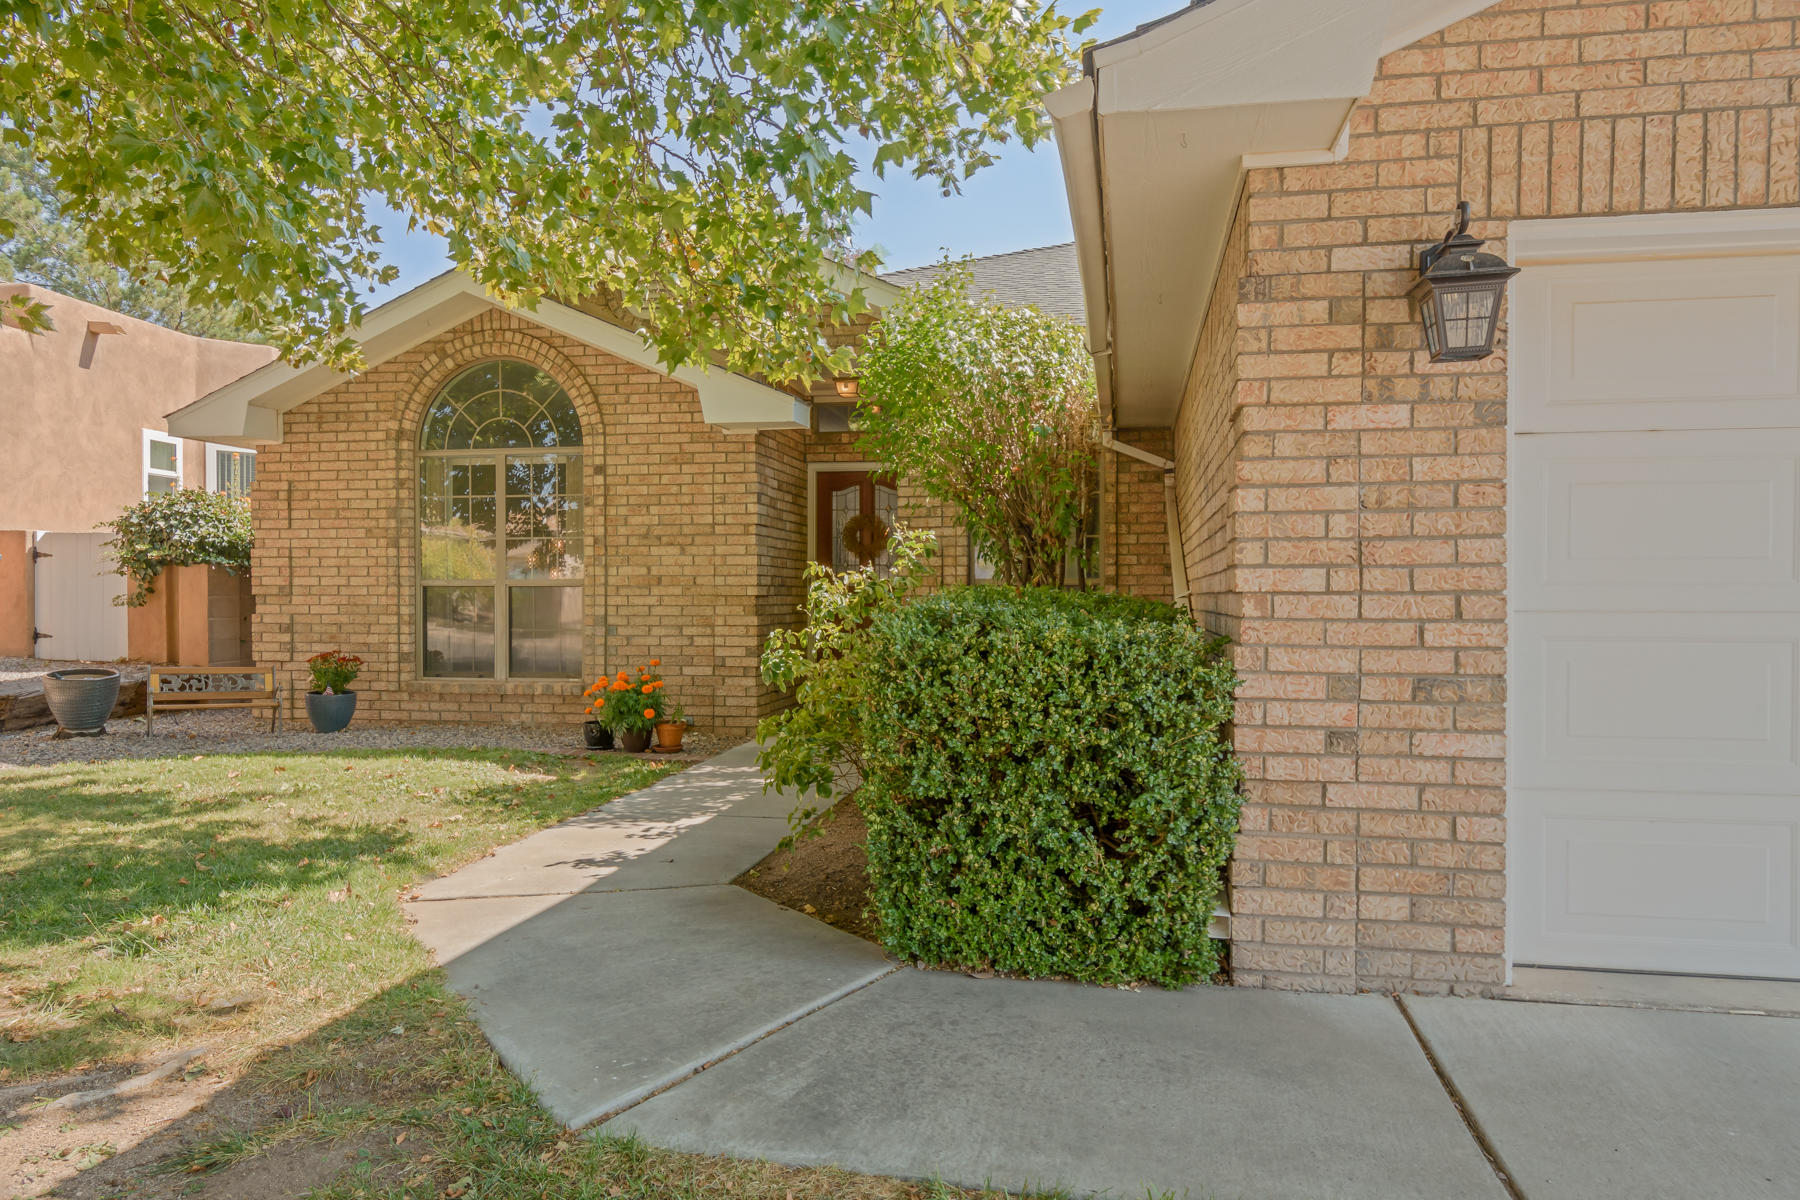 7816 VILLANUEVA Drive NE Property Photo - Albuquerque, NM real estate listing